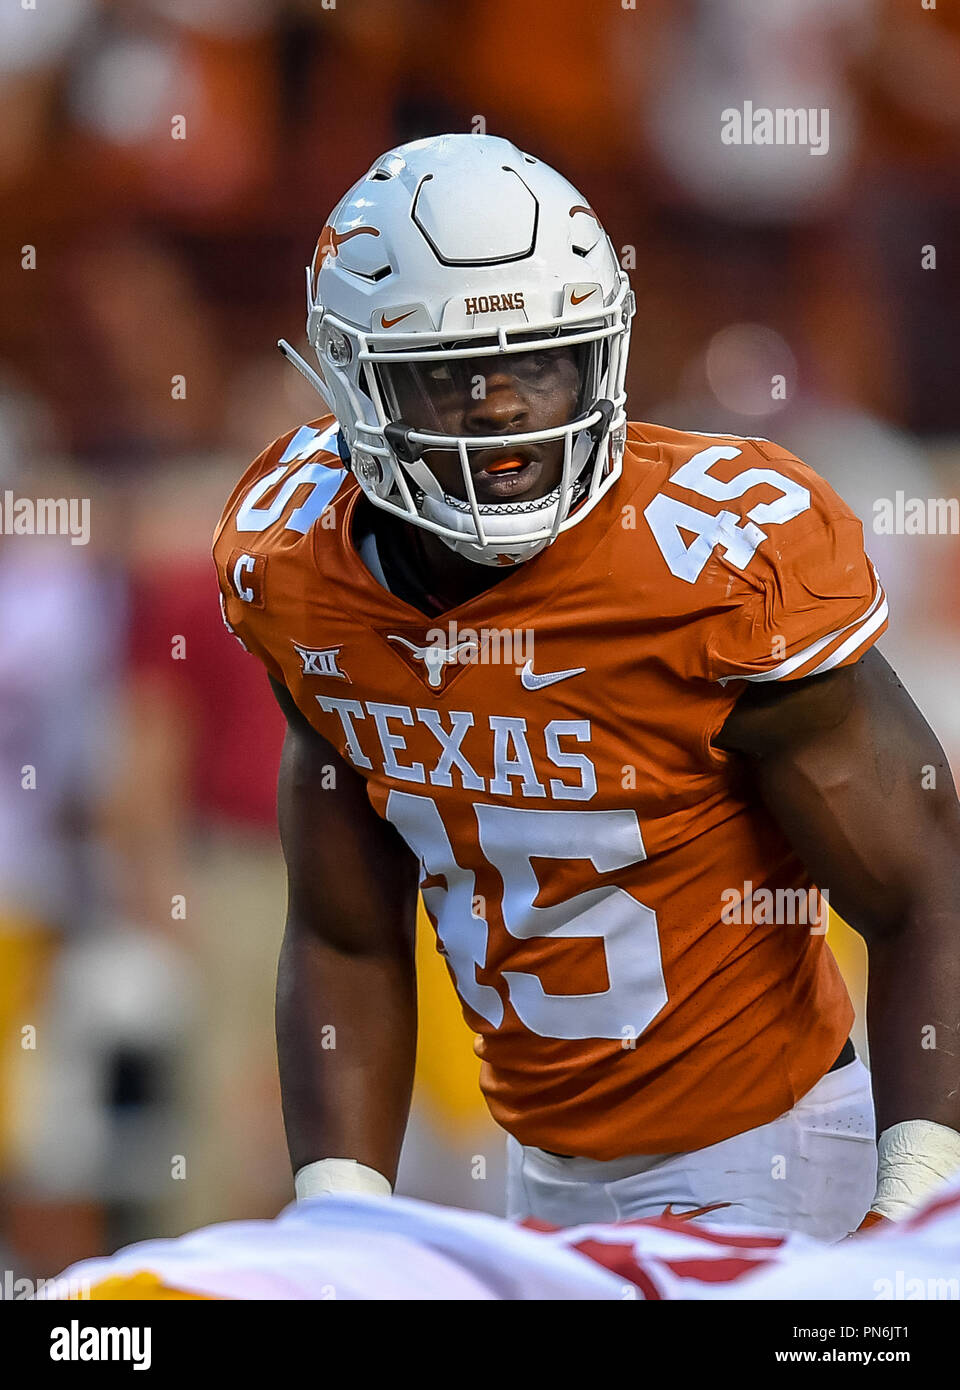 Austin Tx Usa 15th Sep 2018 Longhorn Linebacker 45 Anthony Wheeler Reading The Usc Offense During The Ncaa Football Game Between The University Of Texas Longhorns And The Usc Trojans In Austin